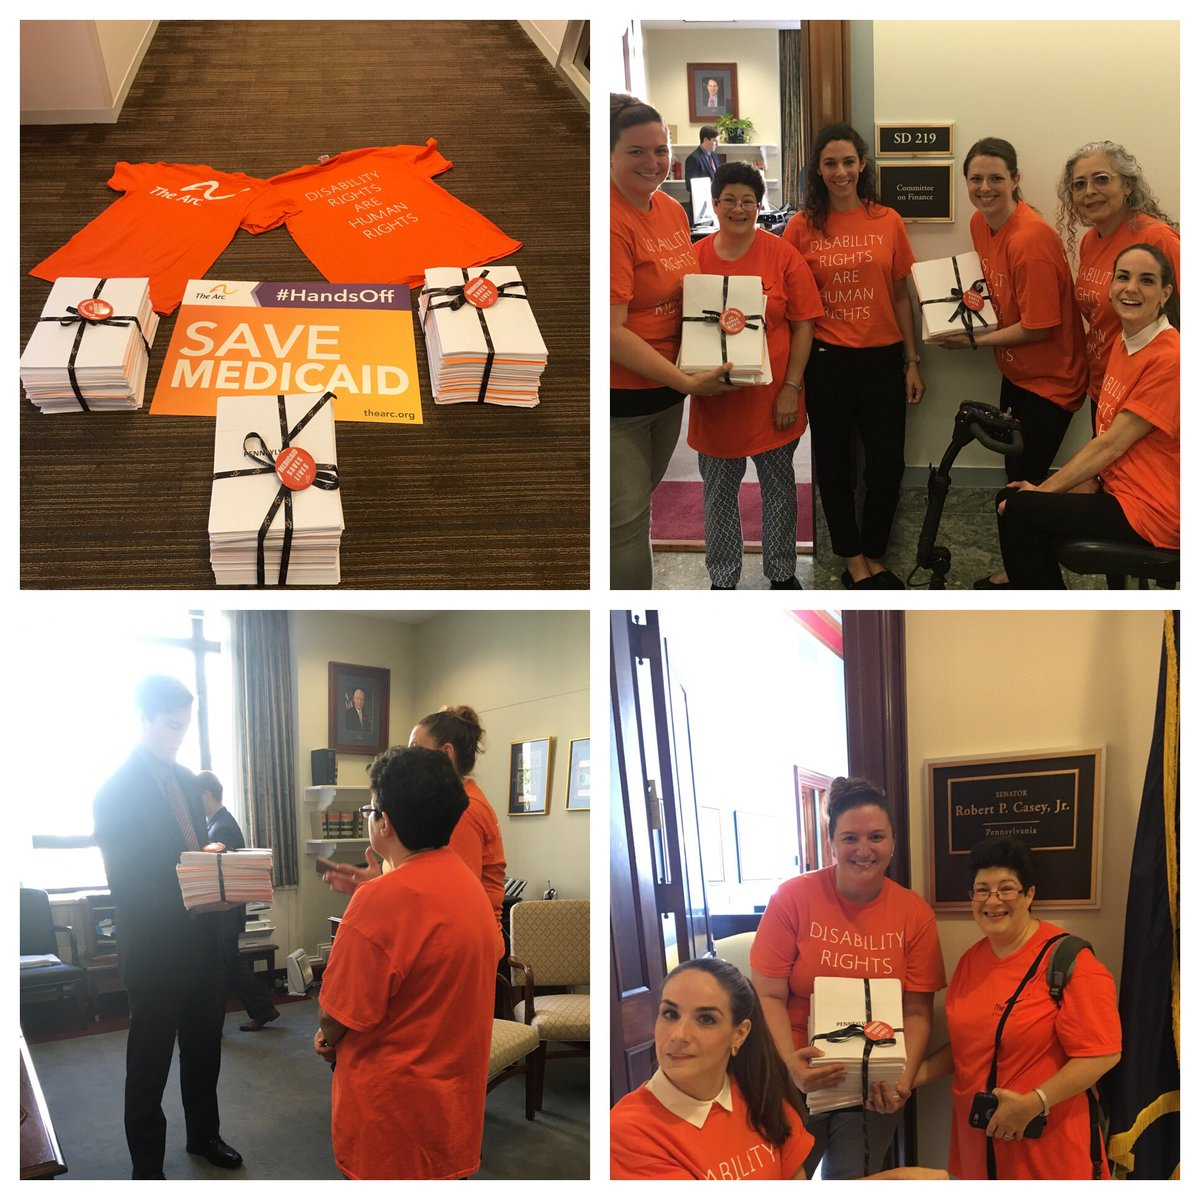 We dropped off hundreds of letters sharing why #Medicaid is important &amp; #GrahamCasiddy is dangerous for #PwD @GOPFinance #HandsOff #Medicaid<br>http://pic.twitter.com/UeBfmmIc5S